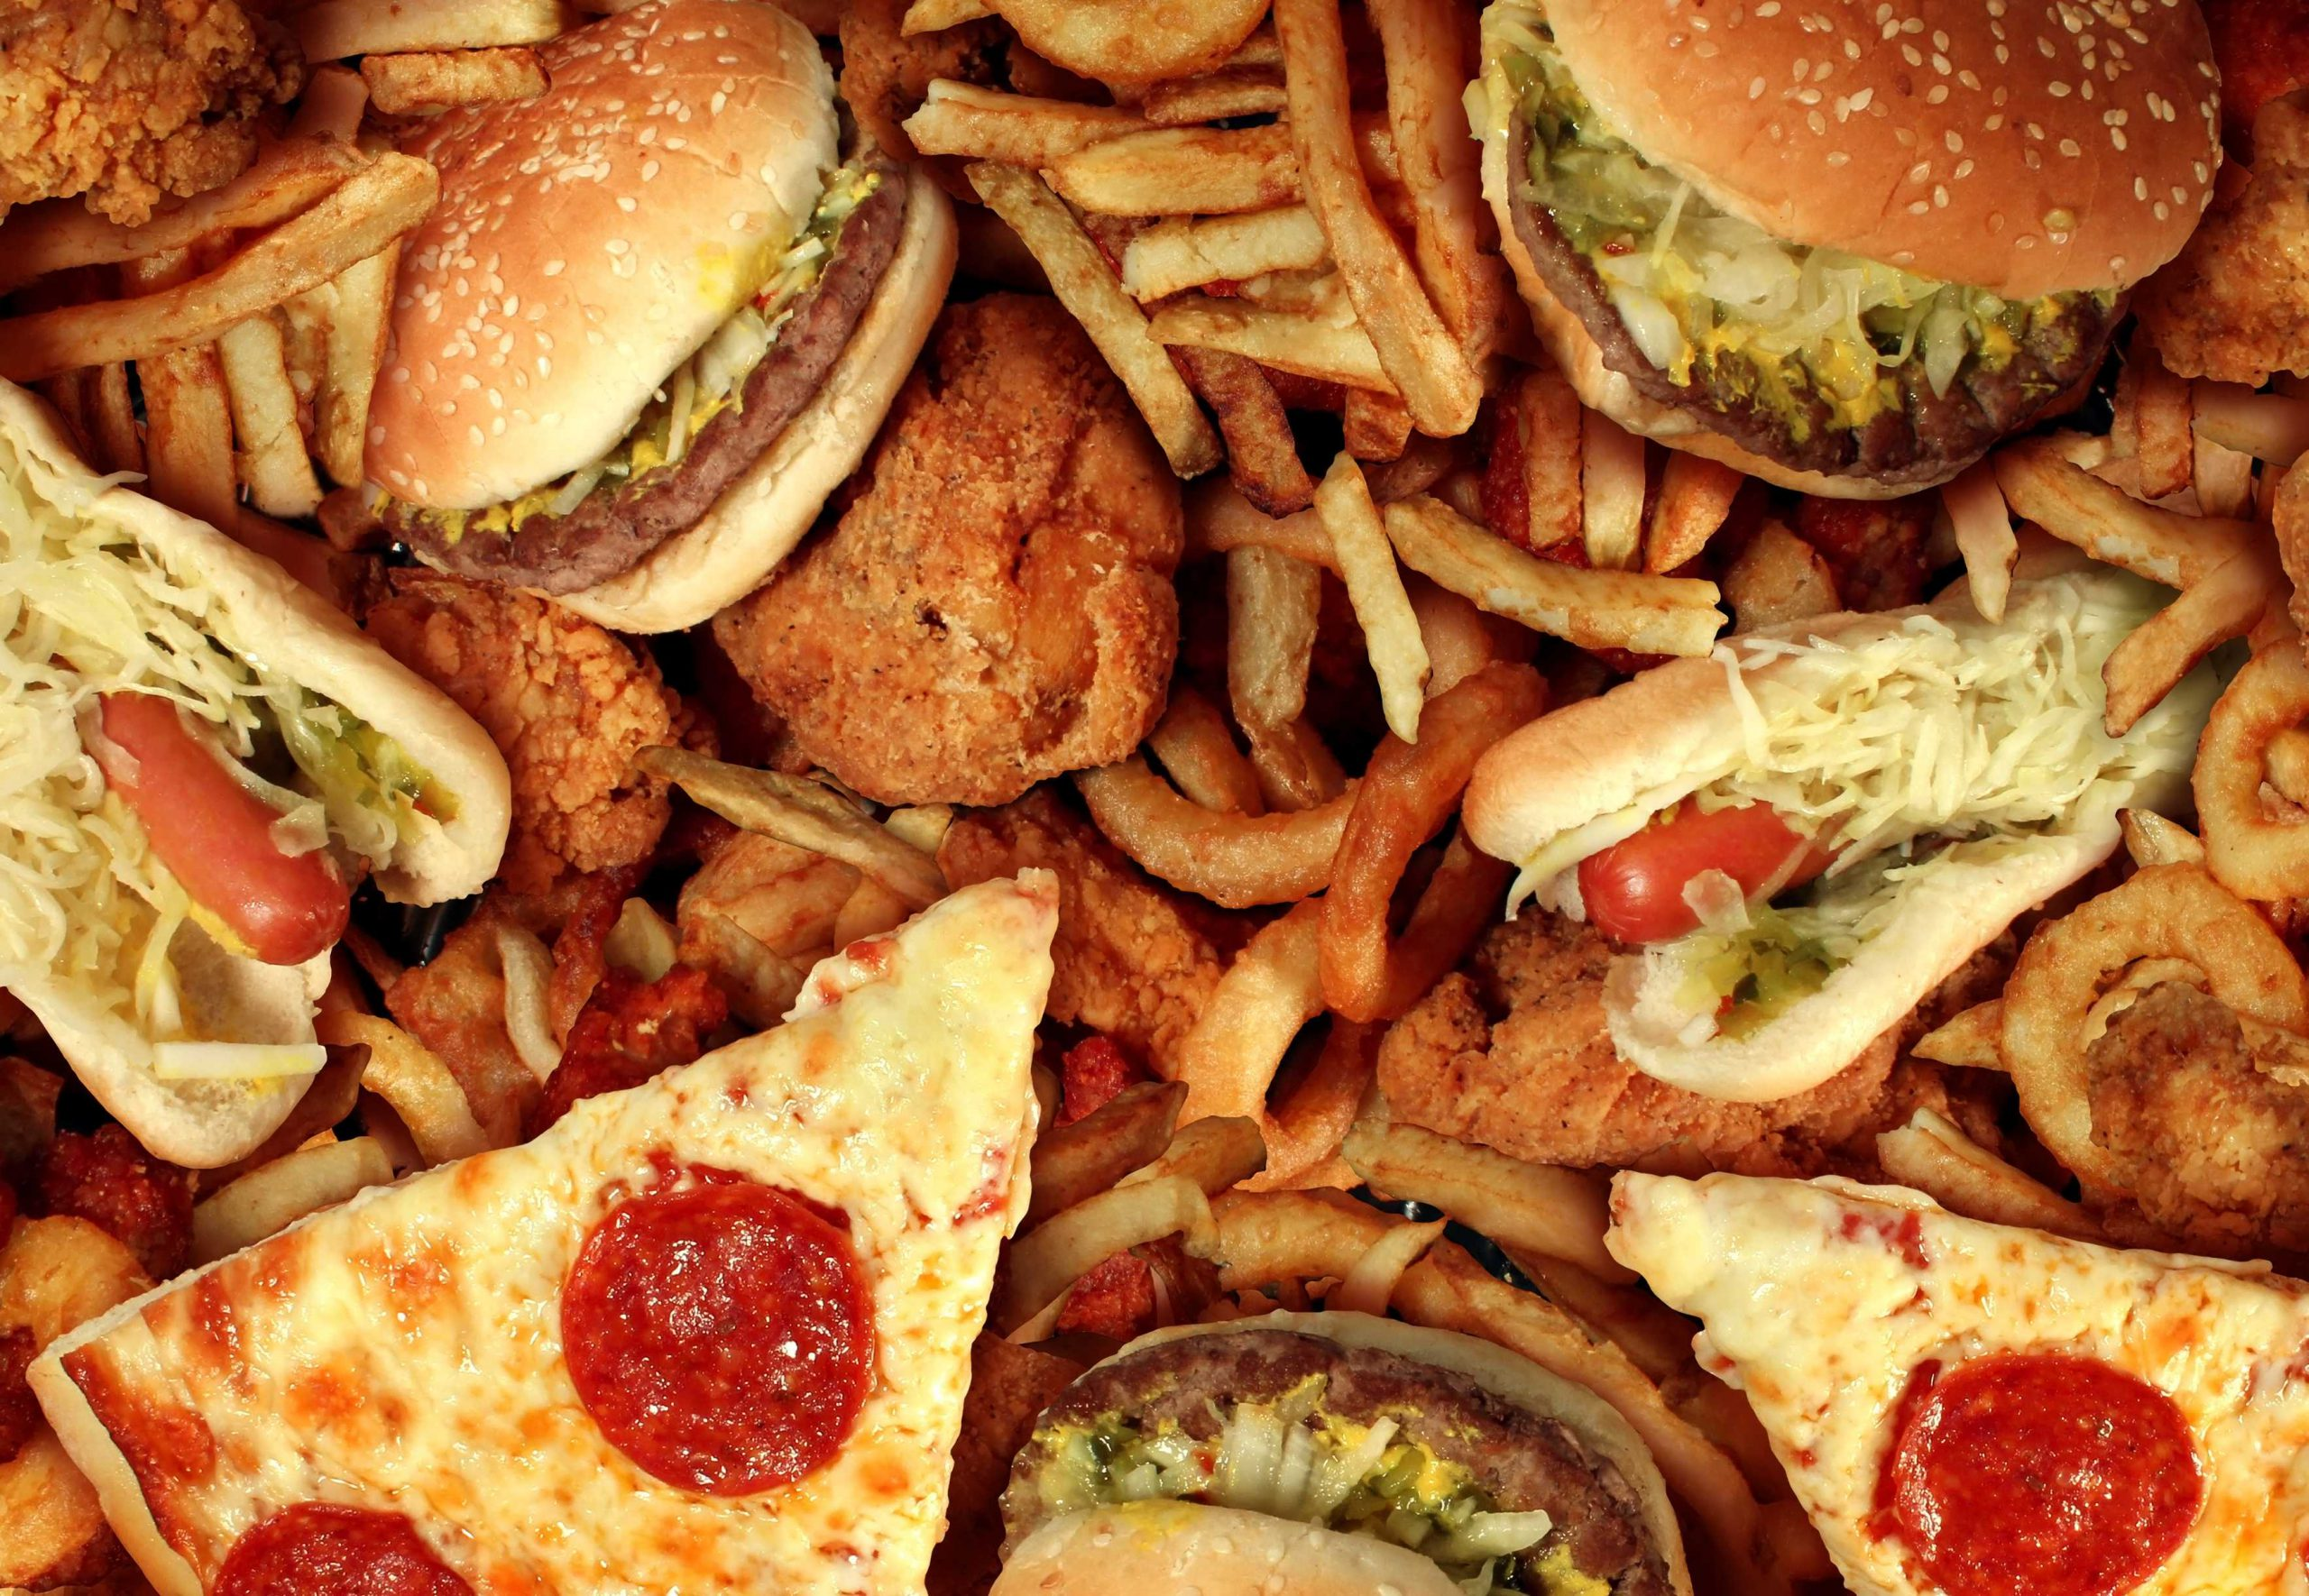 The Trans Fat Pictures